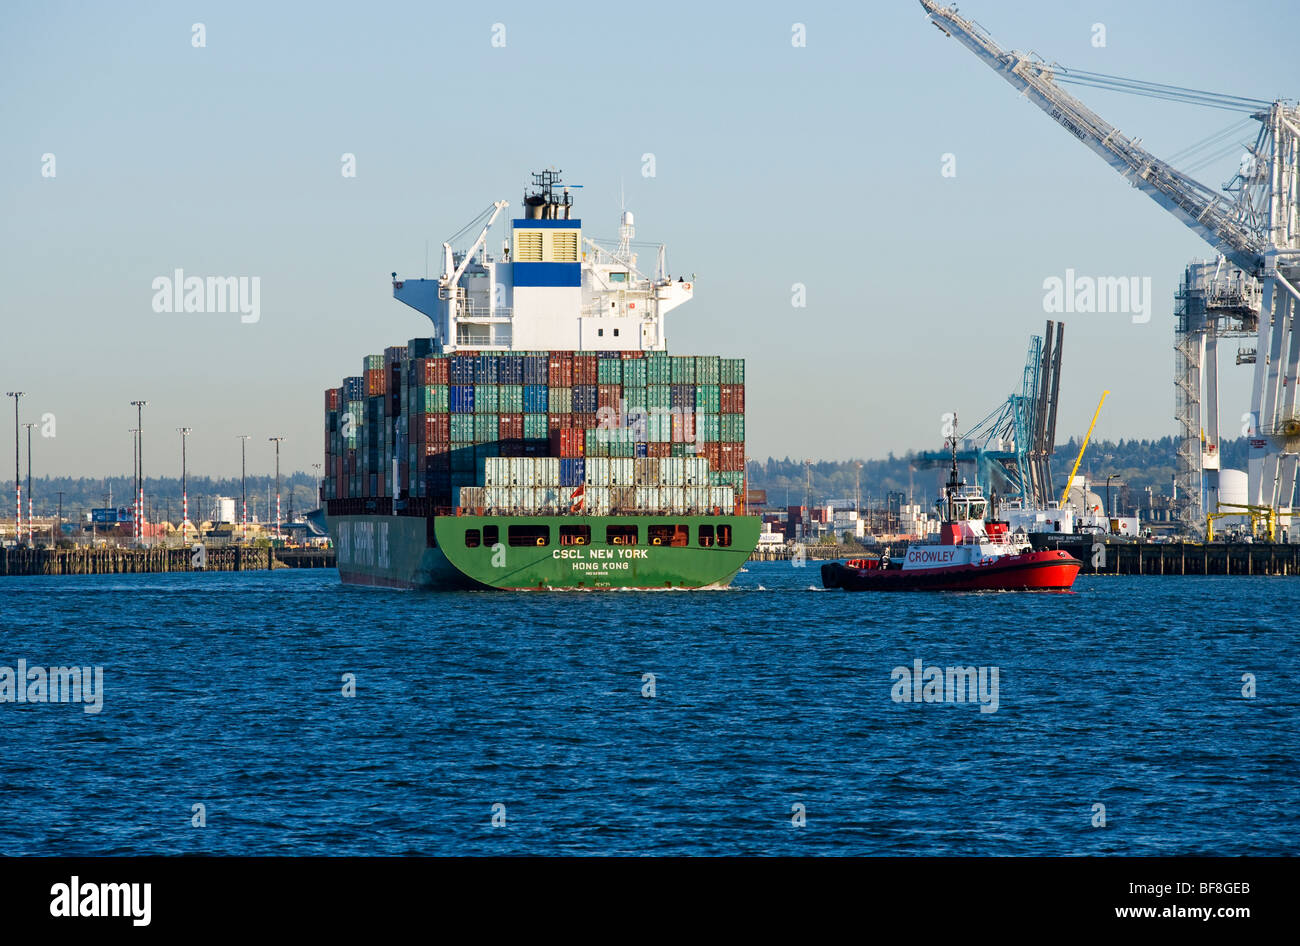 A tug boat pulls a container ship out into Elliott Bay at the Port of Seattle, Seattle, WA USA. - Stock Image